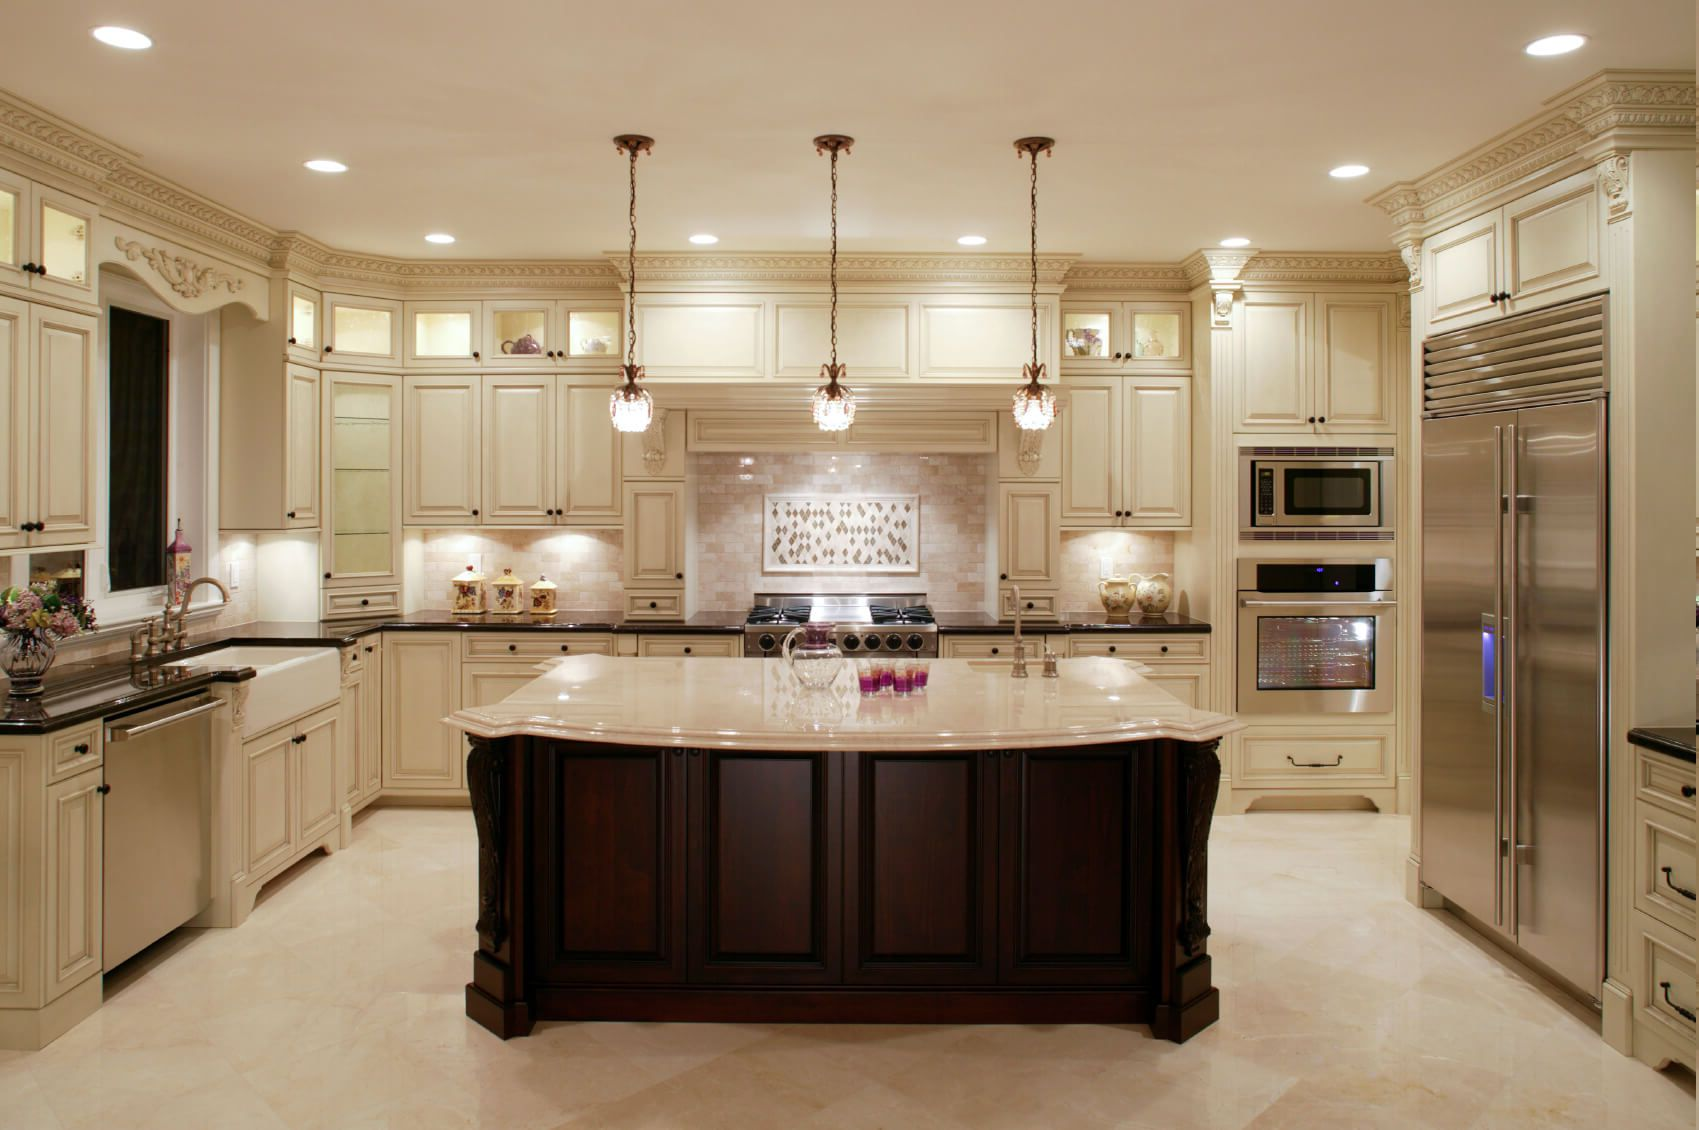 Cost Of 10x10 Kitchen 10x10 Kitchen Design Cabinets Islands Layouts